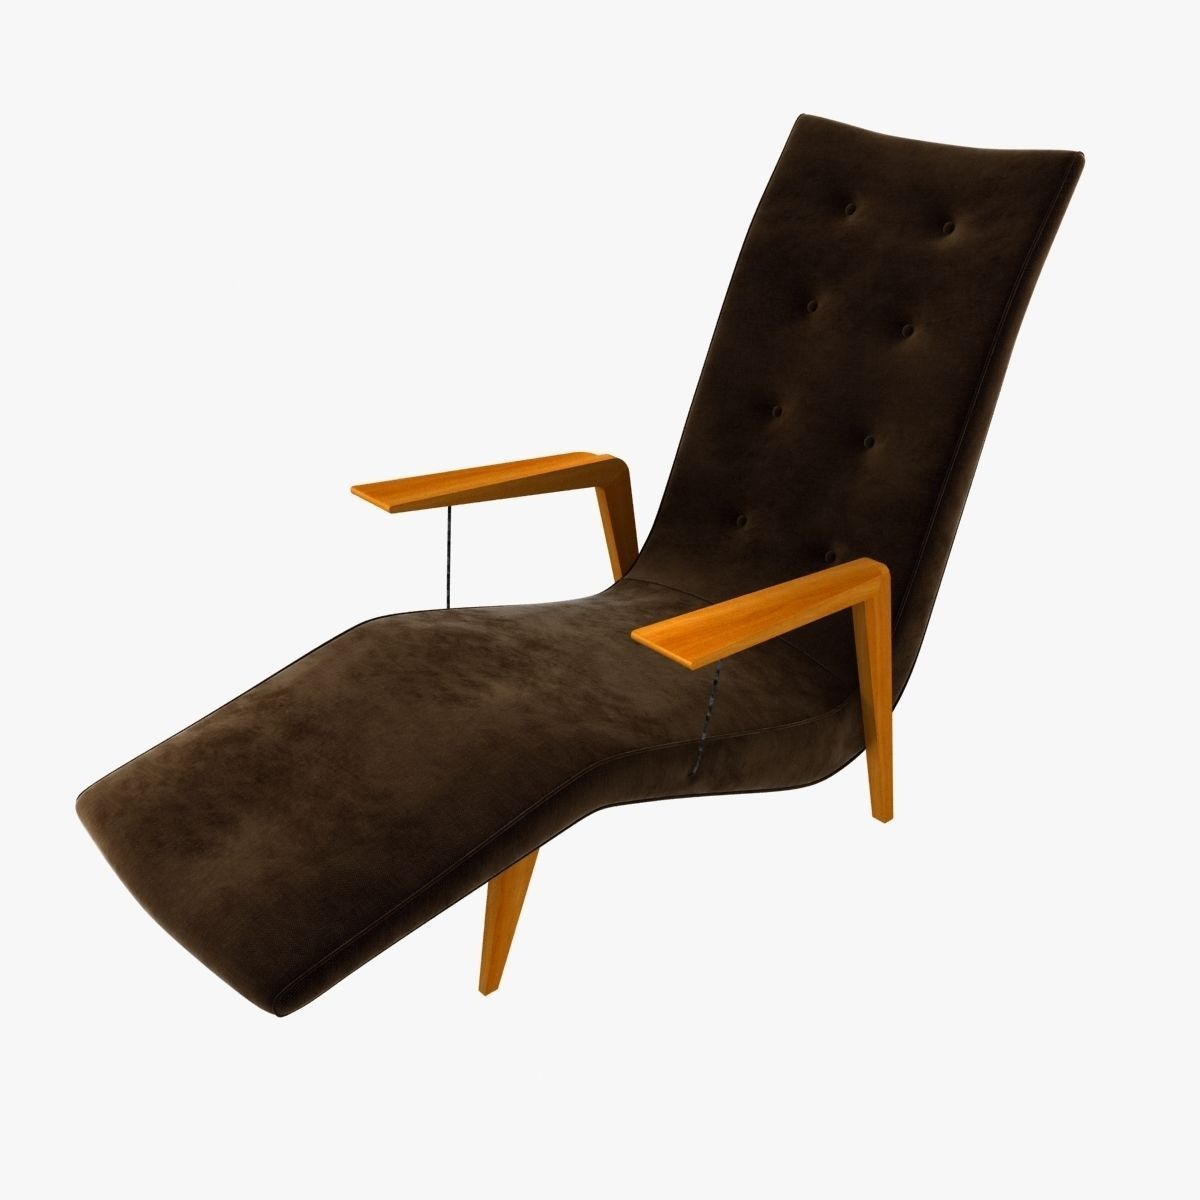 chaise lounge by joaquin tenreiro 3d model max obj 3ds fbx mtl. Black Bedroom Furniture Sets. Home Design Ideas